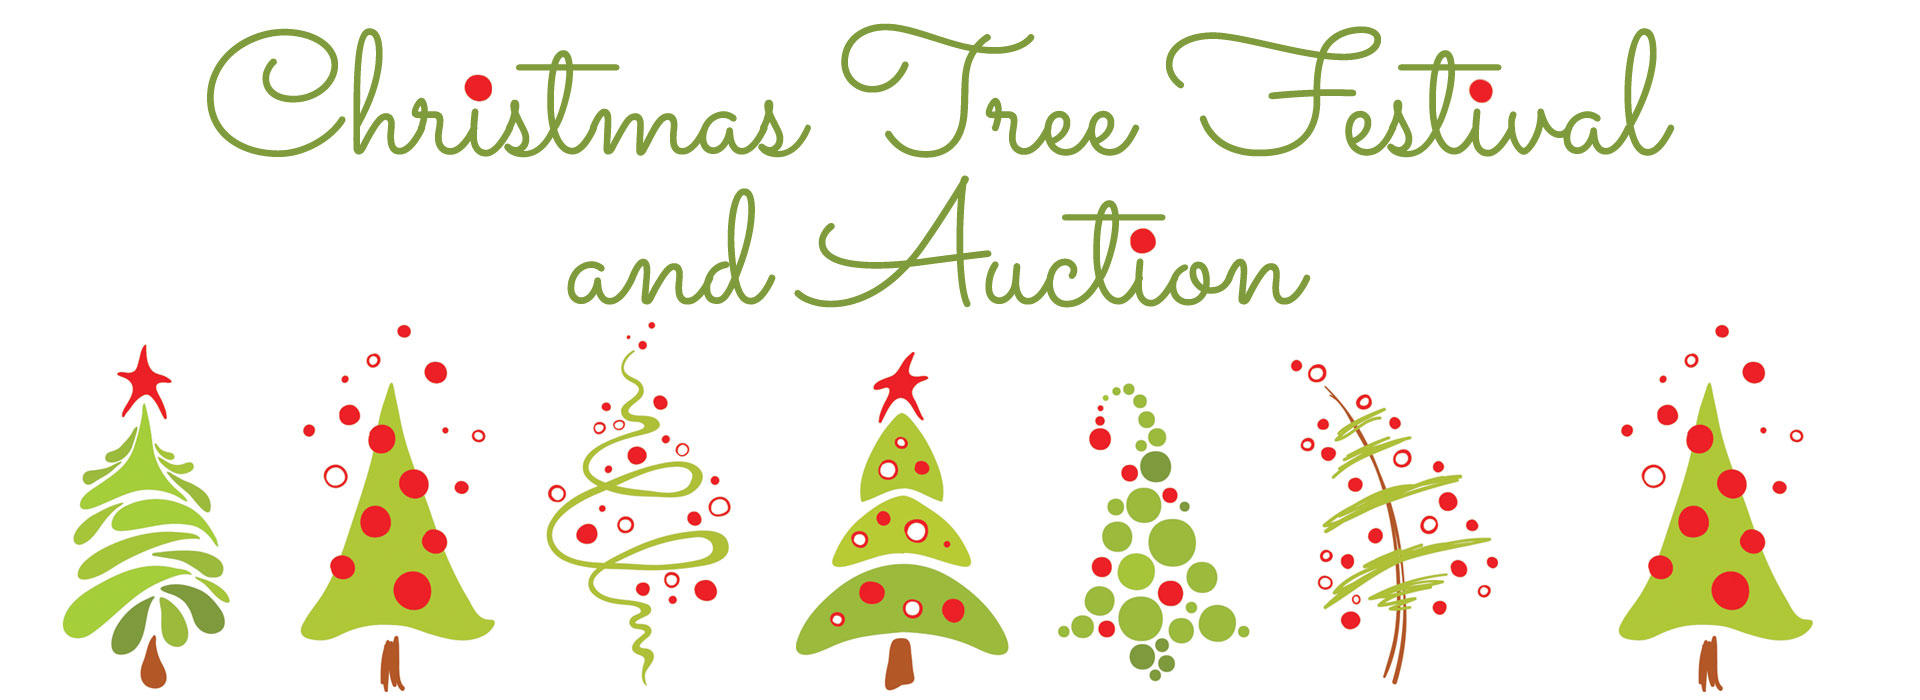 tree-auction-banner